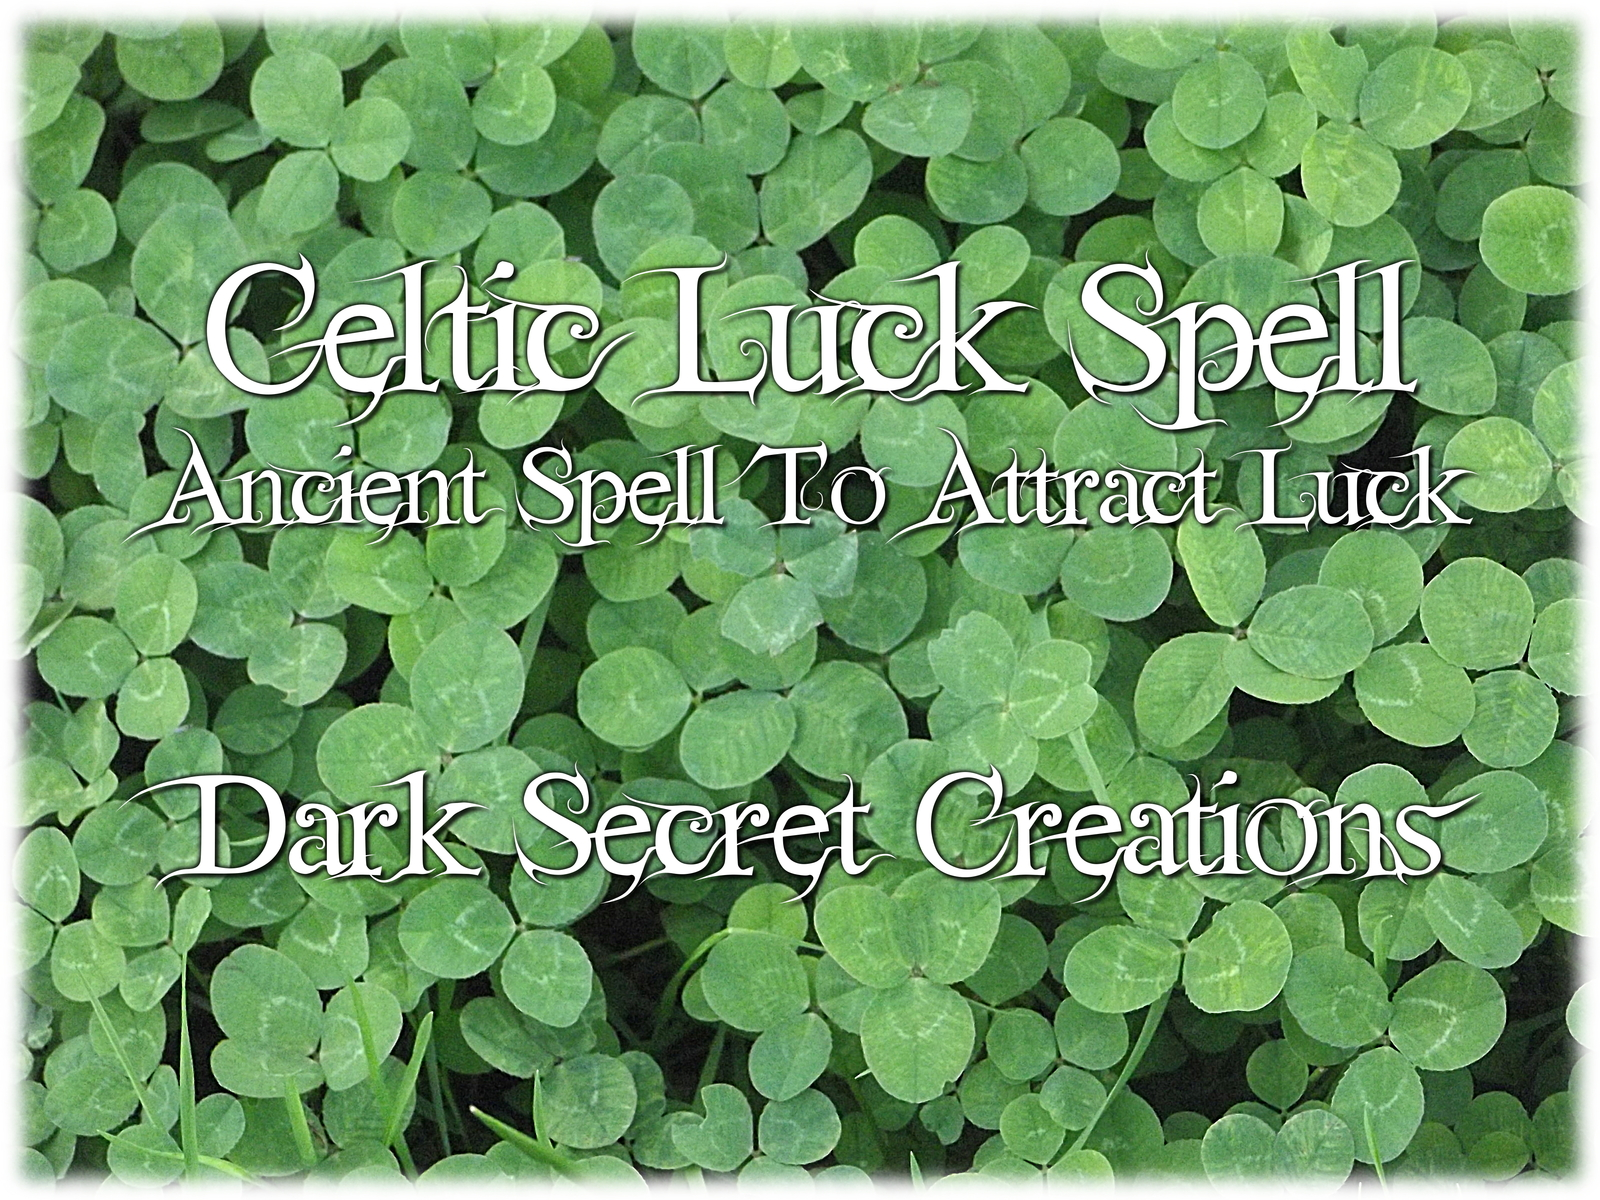 Celtic luck spell